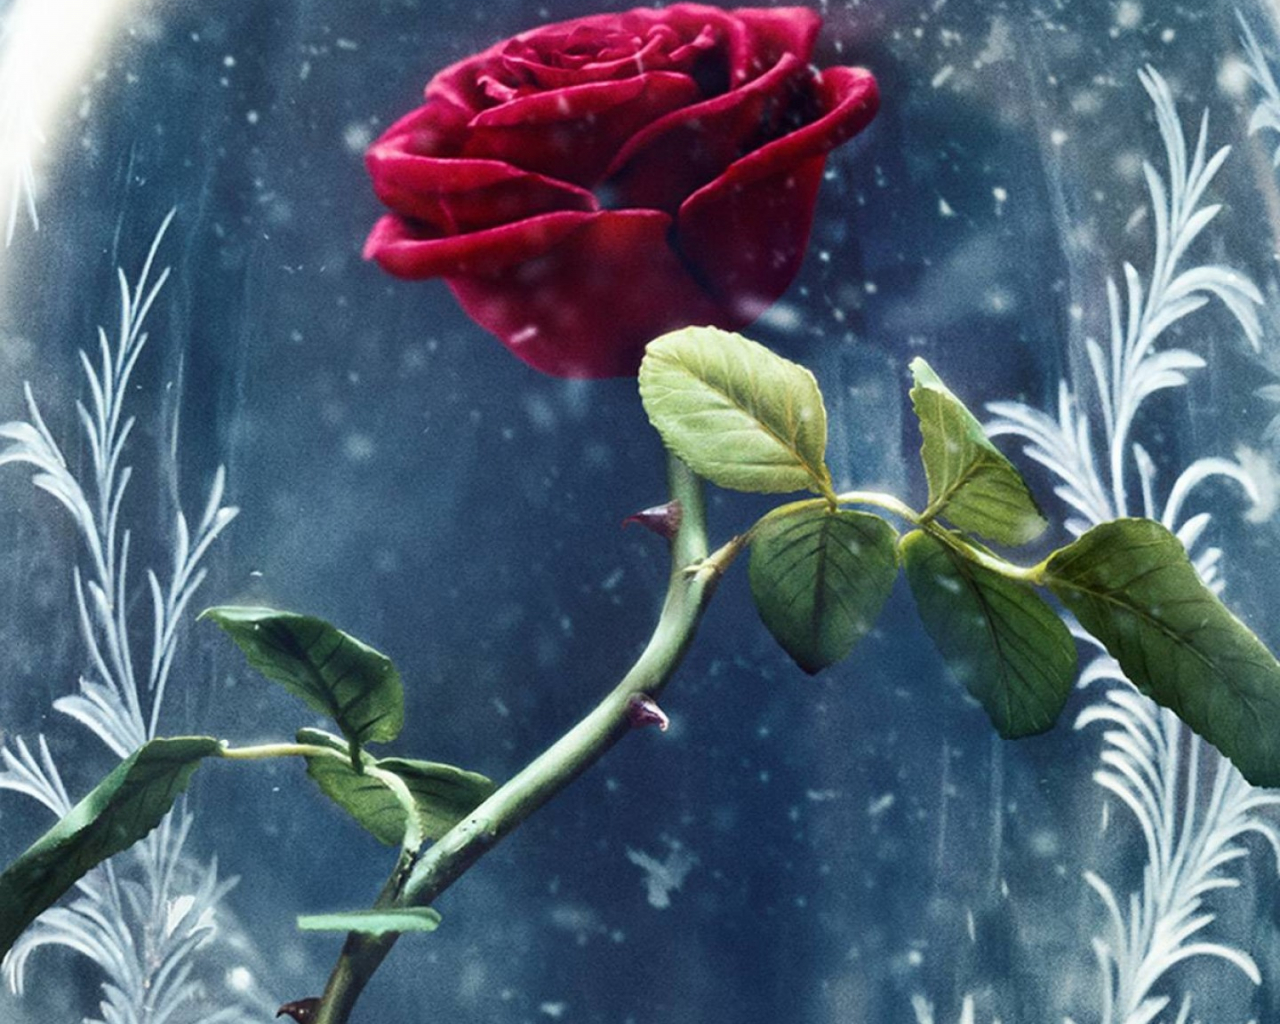 Free Download Wallpaper Beauty And The Beast Rose Red Best Movies Movies 11557 1440x2560 For Your Desktop Mobile Tablet Explore 24 Beauty And The Beast Rose Wallpapers Beauty And